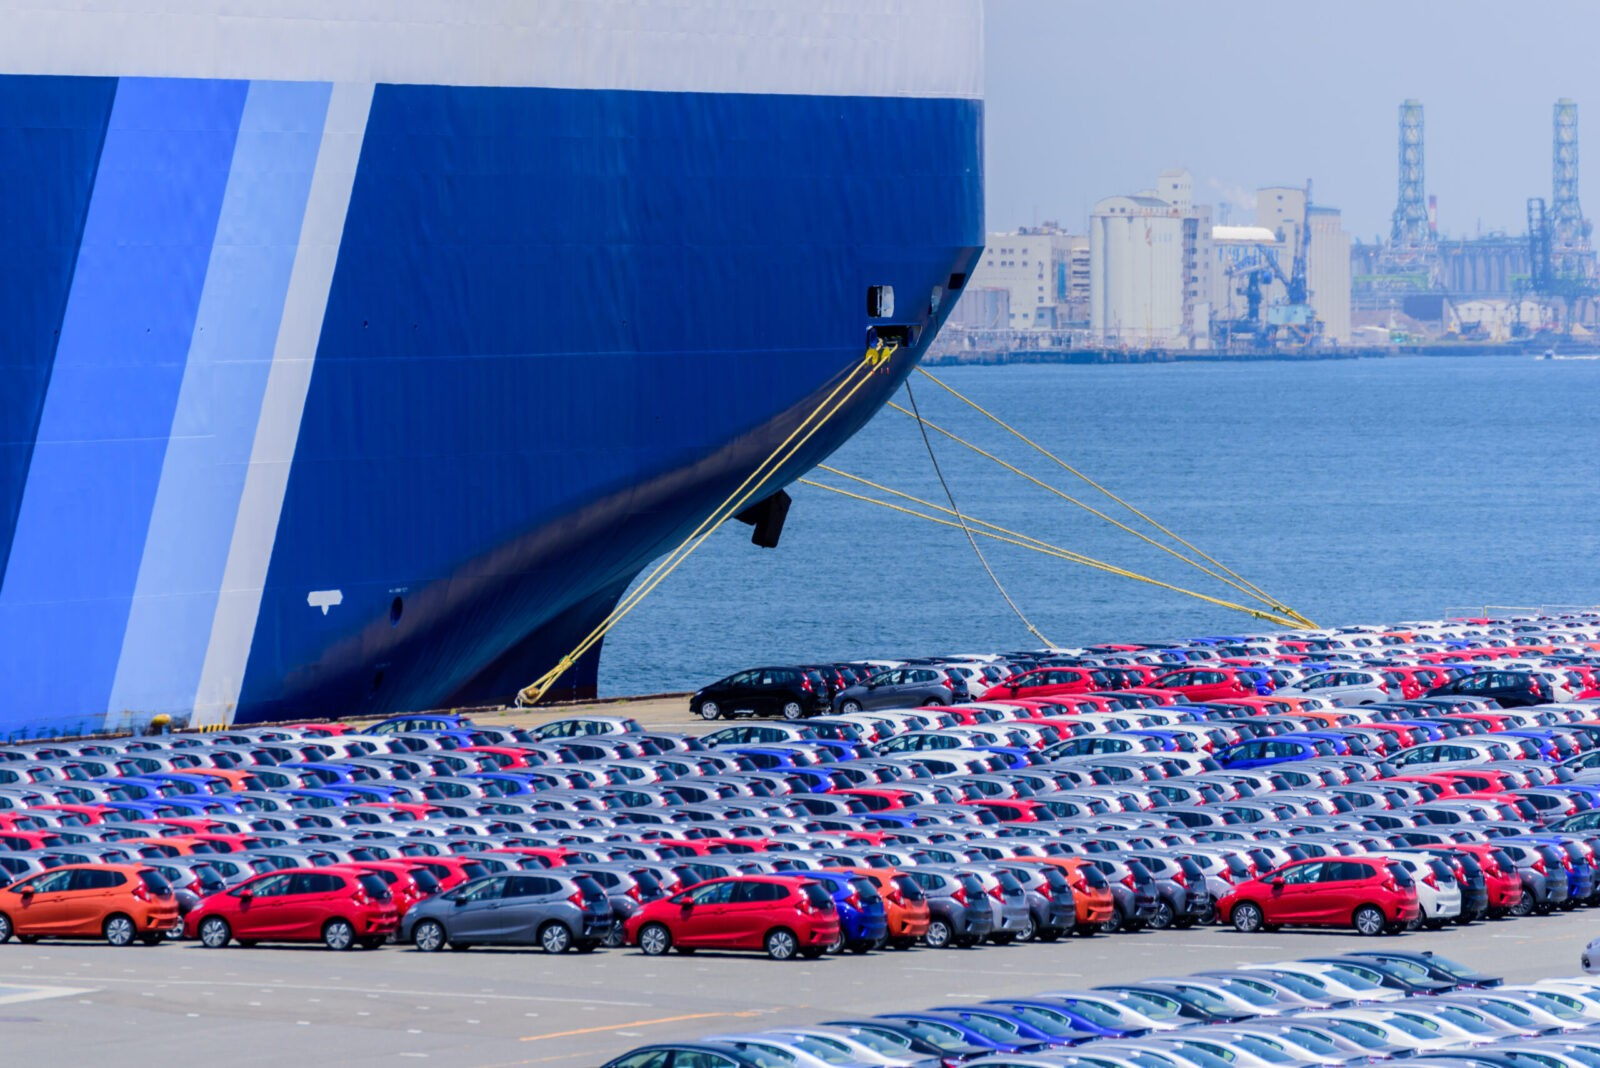 Preparing to load an ocean freighter with vehicles